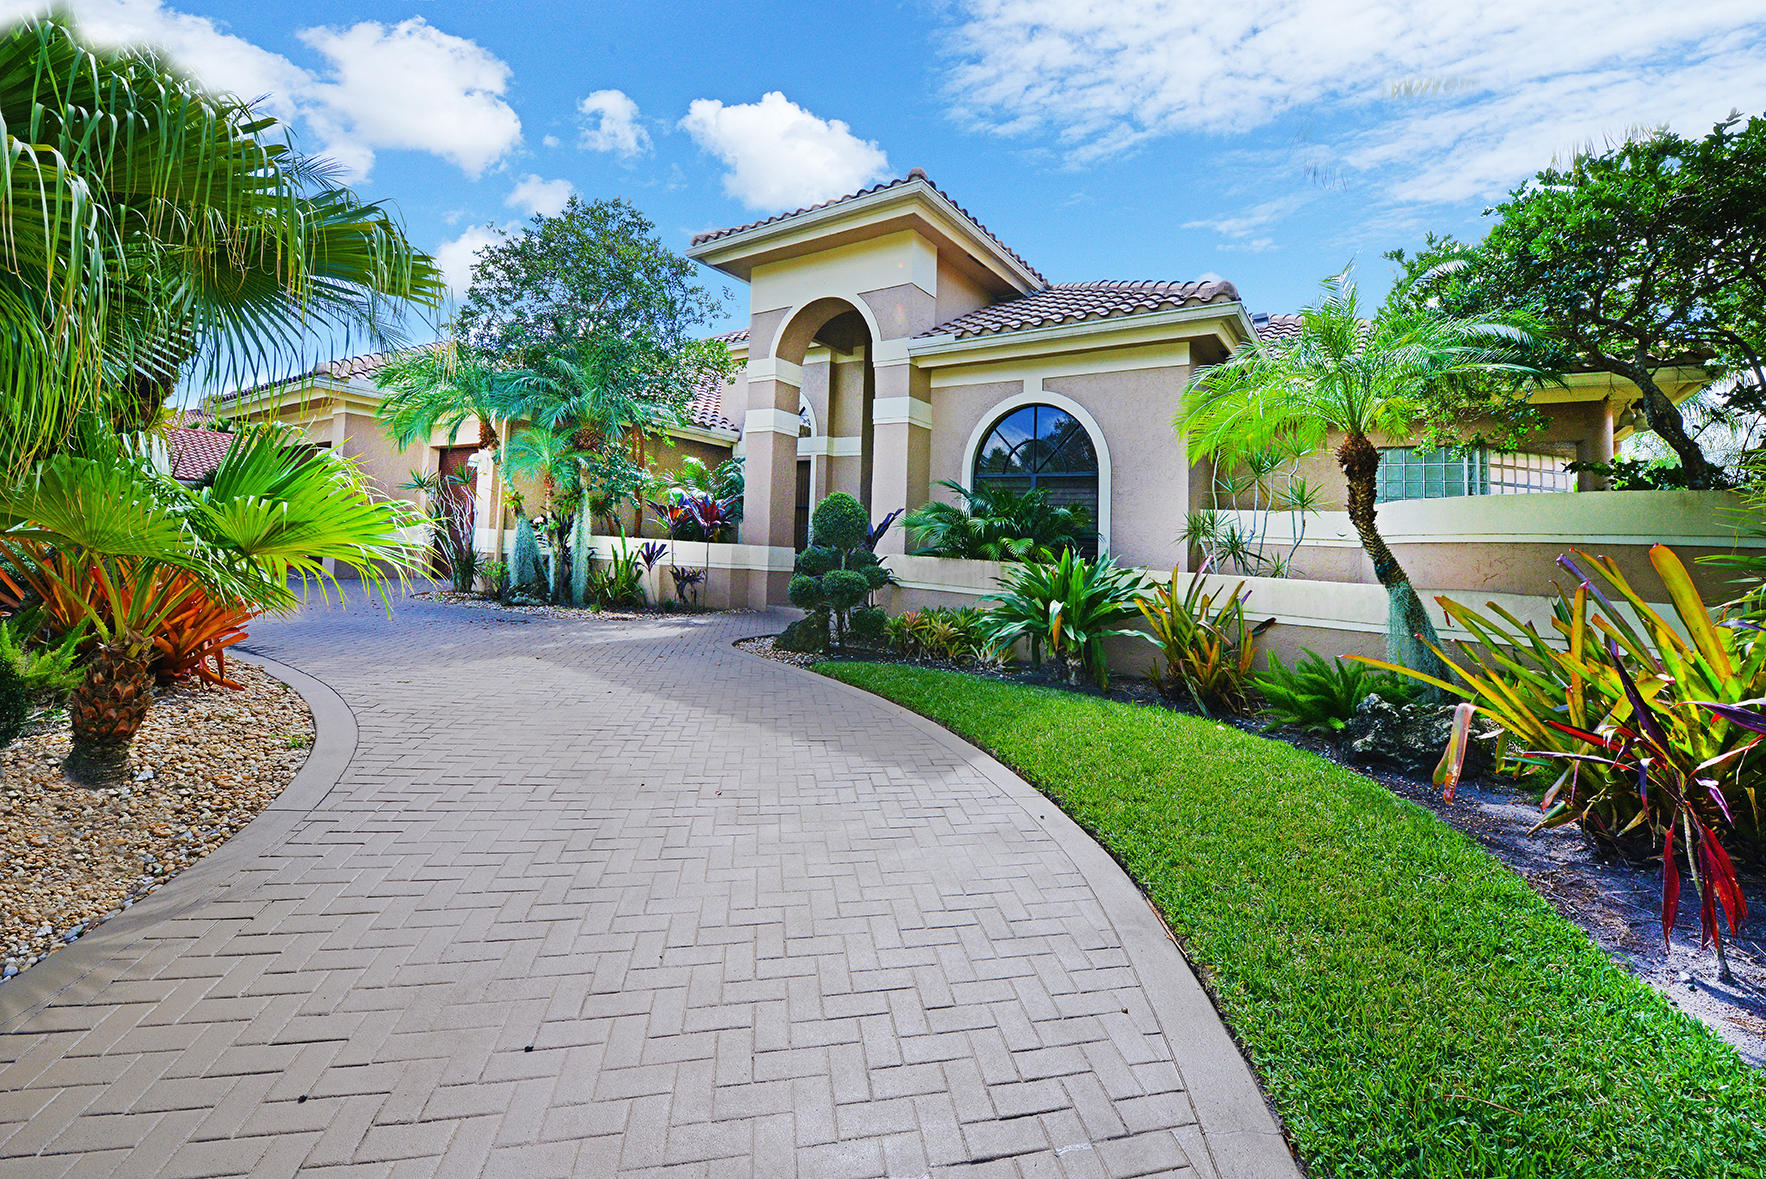 Photo of 6694 Newport Lake Circle, Boca Raton, FL 33496